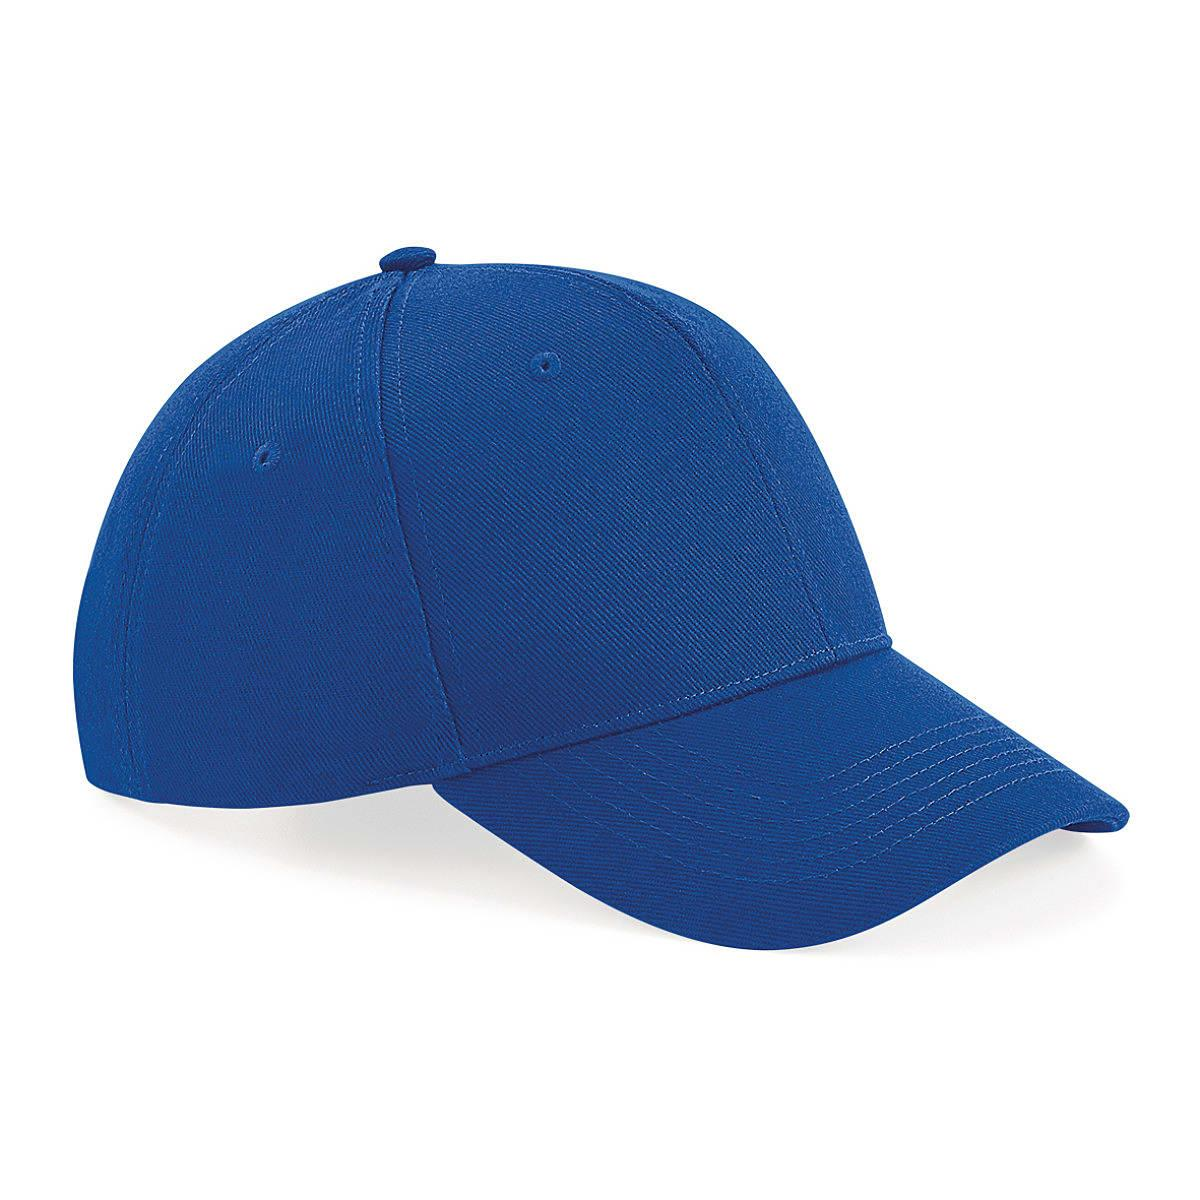 Beechfield Untimate 6 Panel Cap in Bright Royal (Product Code: B18)